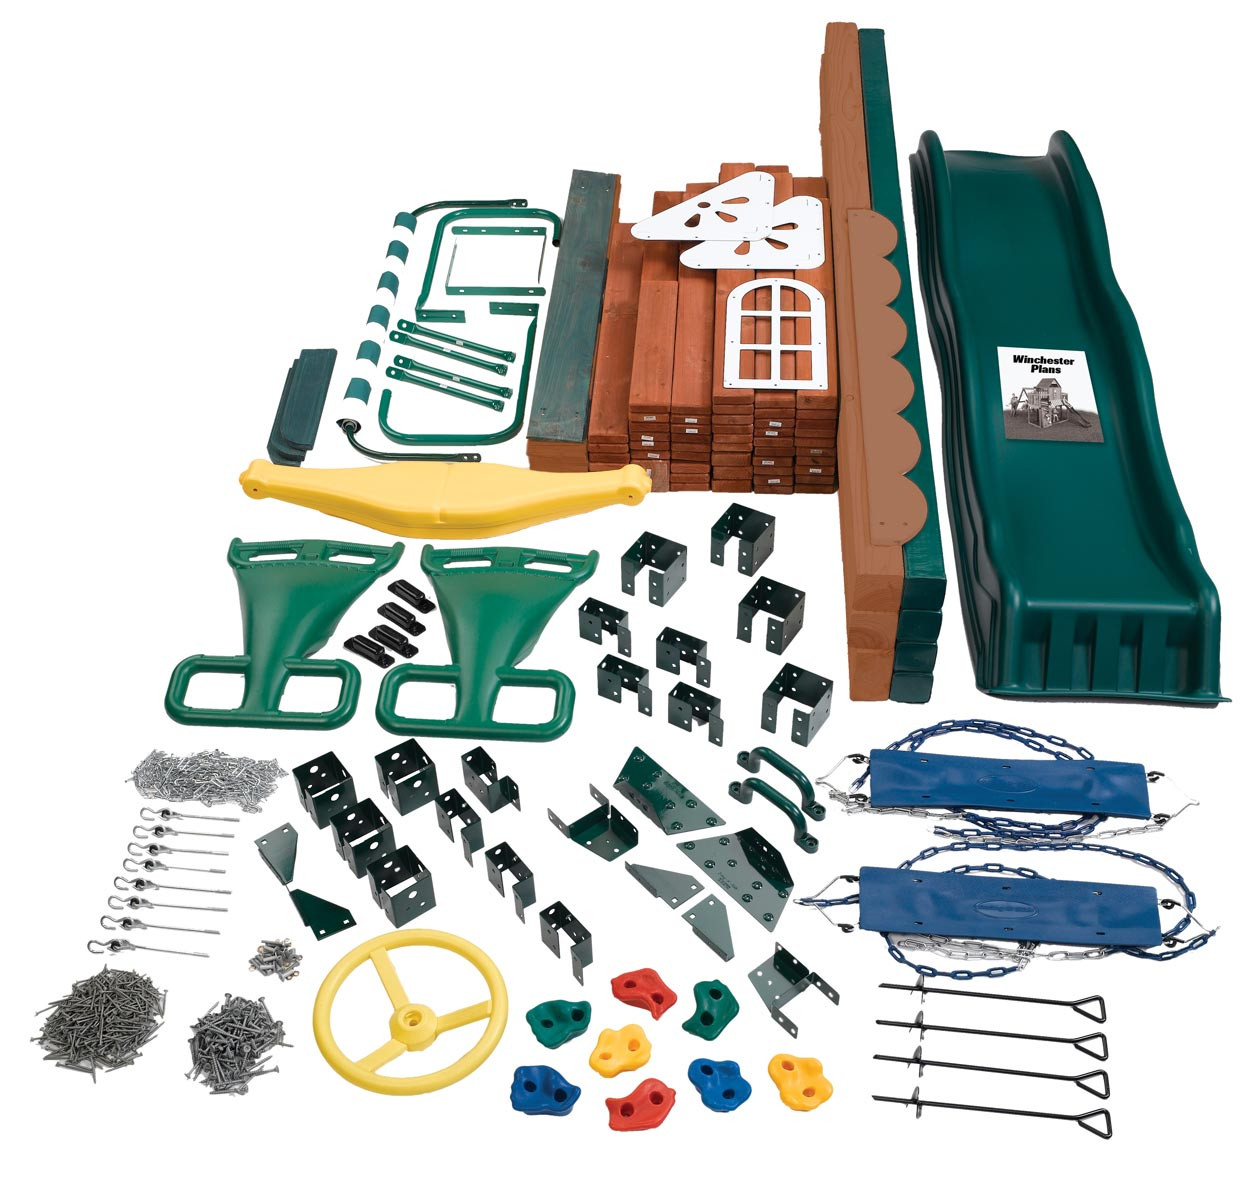 Winchester Swing Set Kit Contents